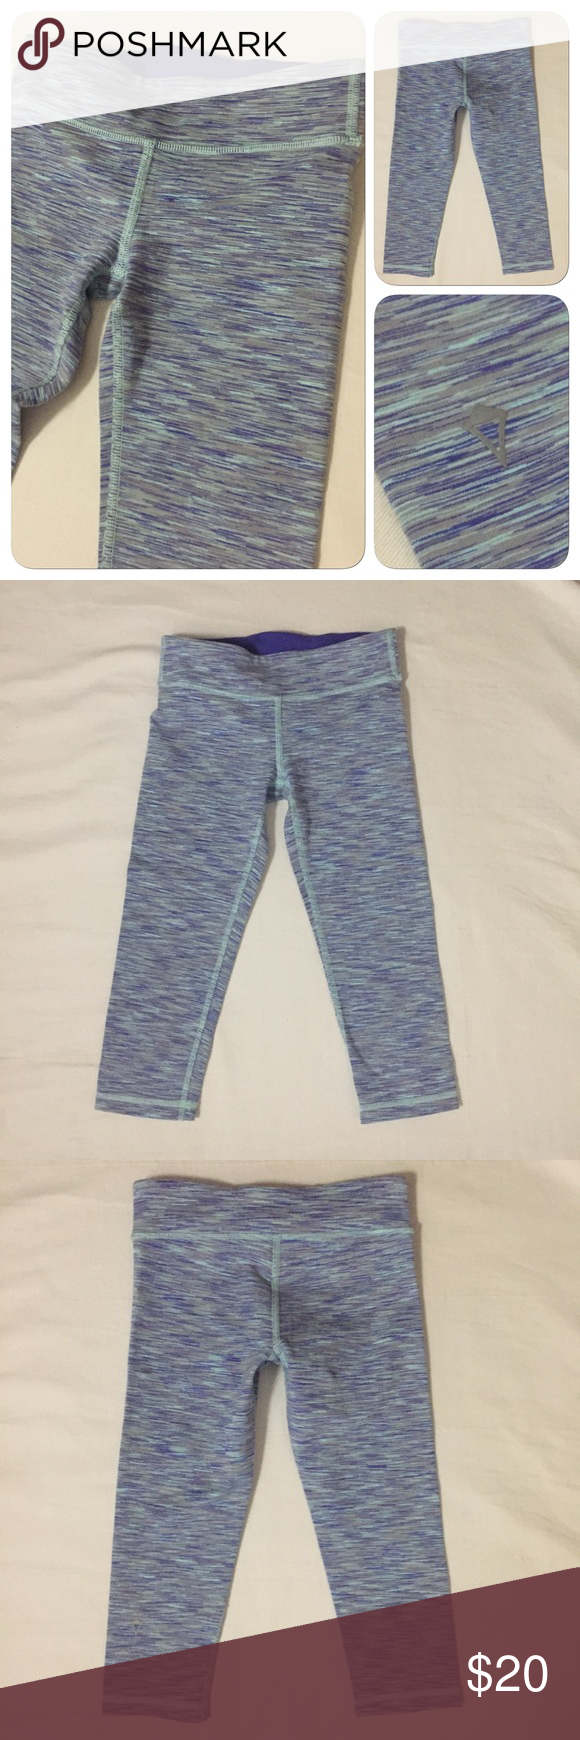 af297af729 Ivivva Lululemon Girls Sz 8 Capri Leggings Ivivva by Lululemon Purple Space  Dye Cropped Kids Leggings